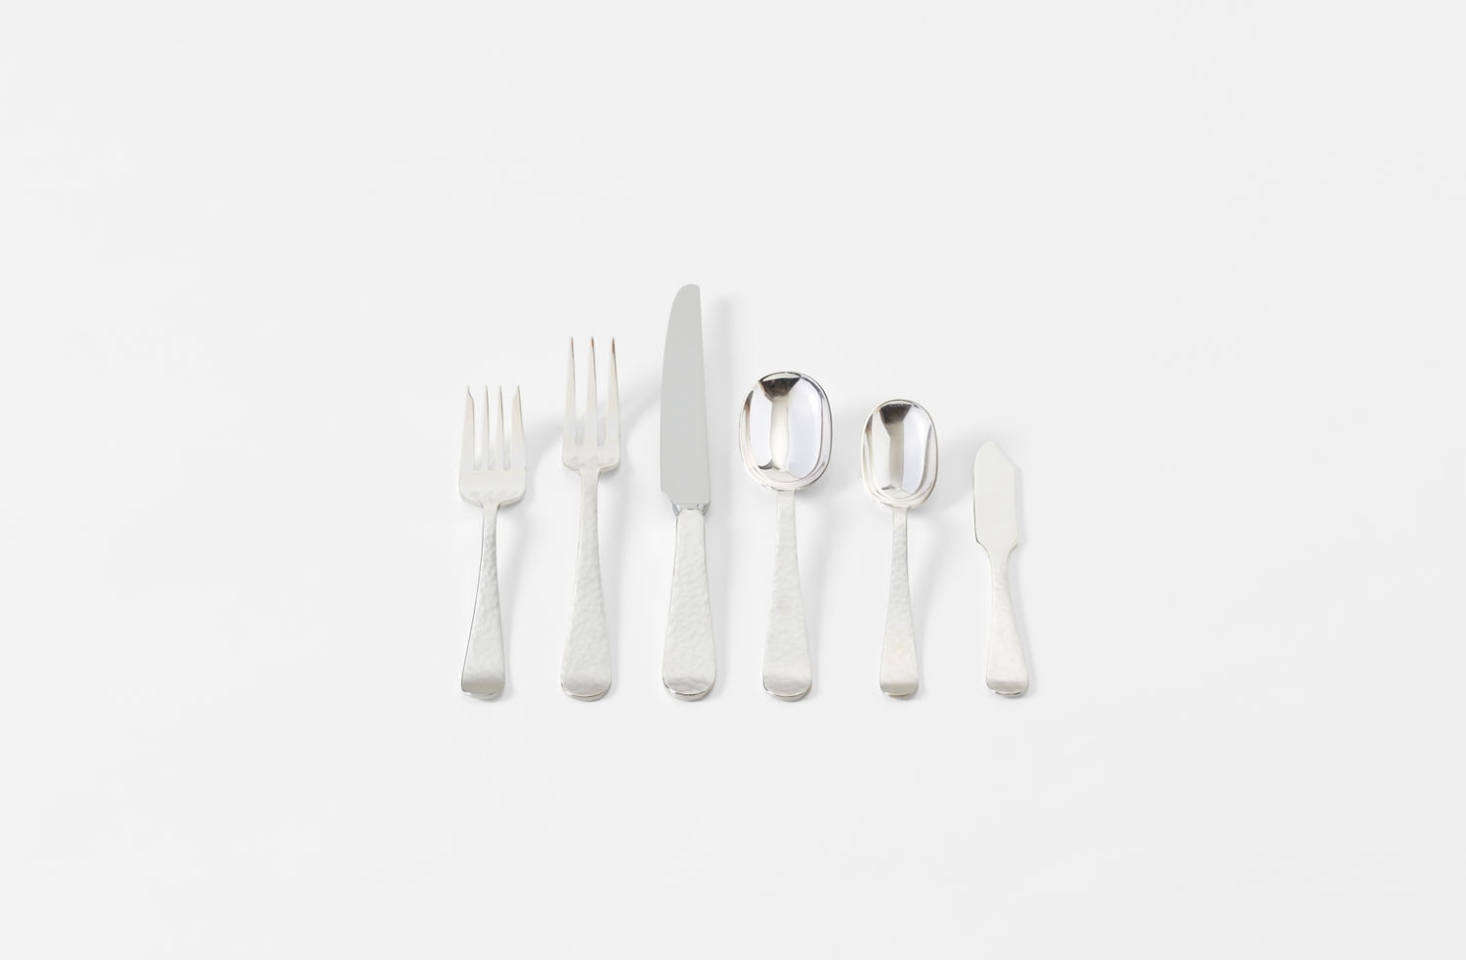 In a design made by famed silversmith Allen Adler, the Round End Flatware was created in the 40s out of Adler&#8